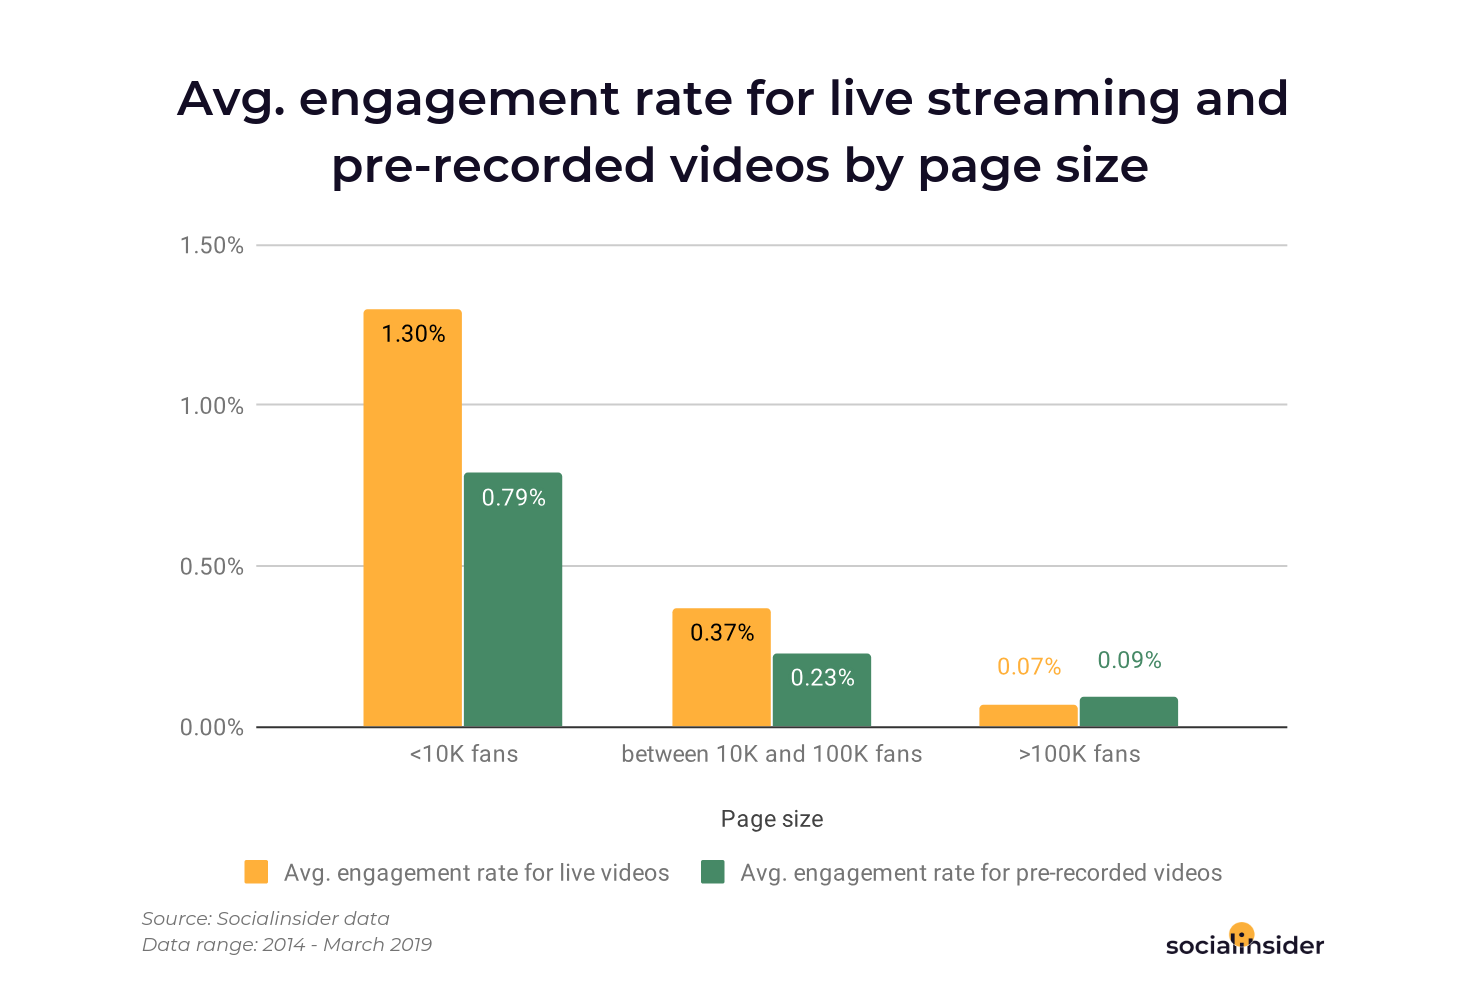 Engagement for live streaming and pre-recorded videos by page sizes